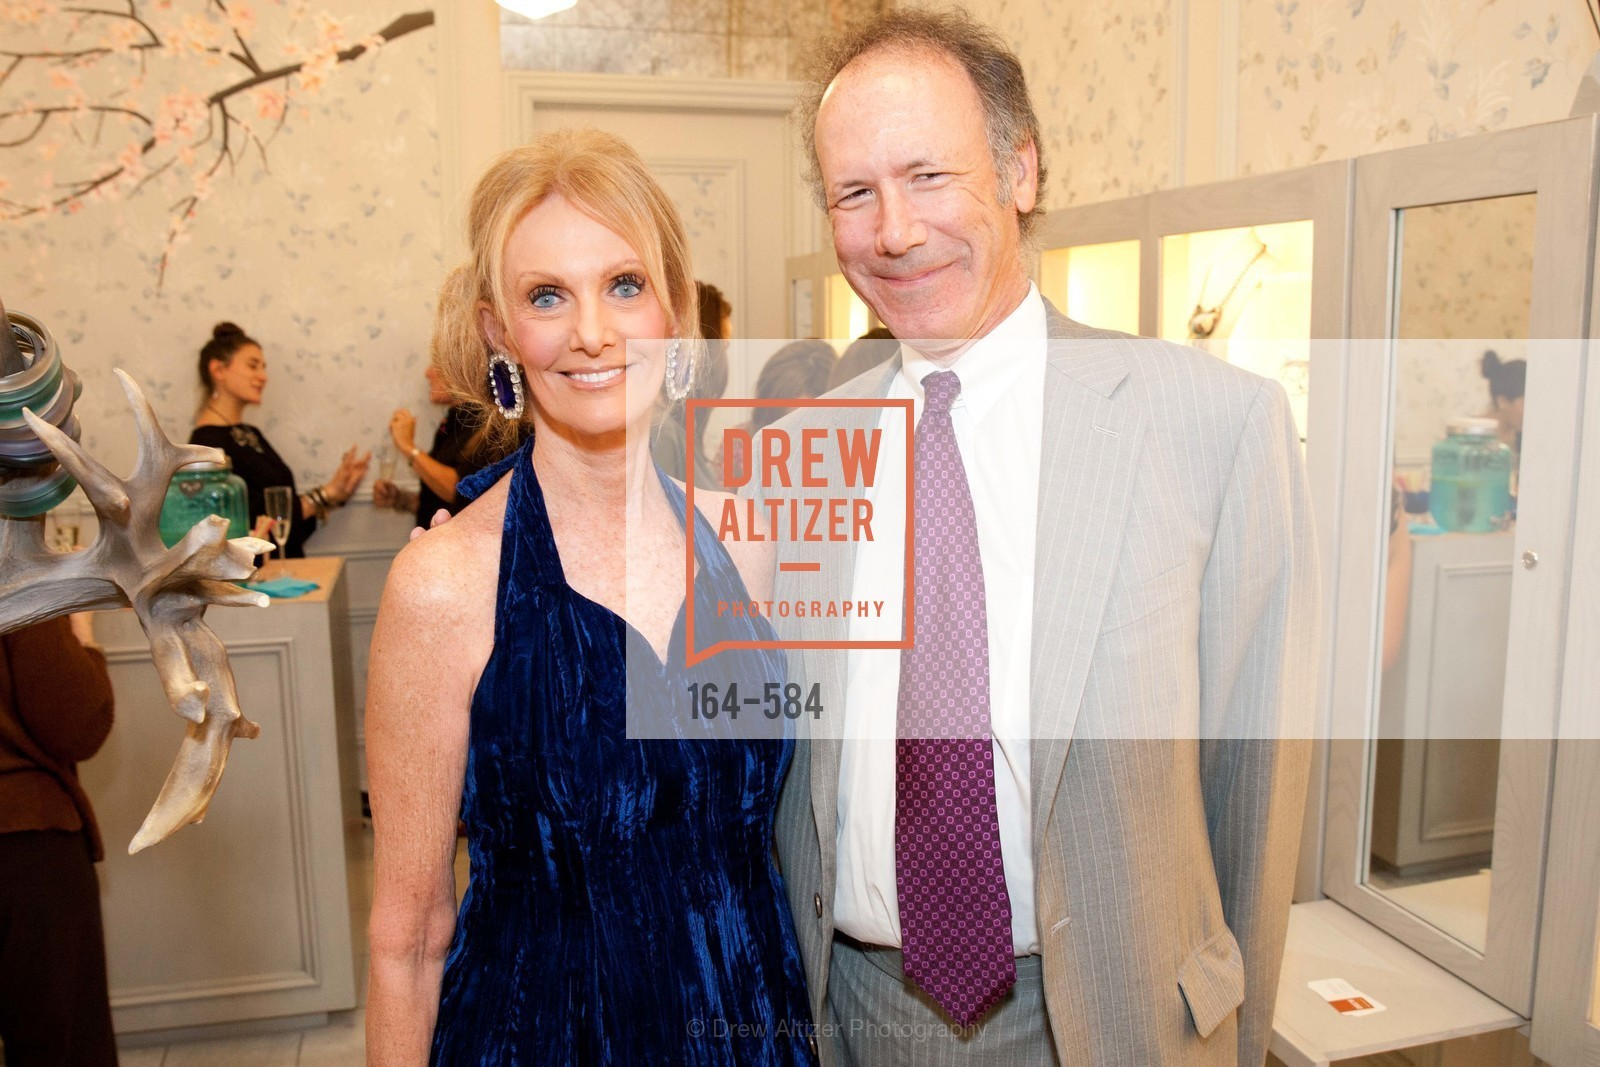 Belinda Berry, Tom Barrett, Alexis Bittar Event; Support of the San Francisco Fall Antique Show Benefitting Enterprise for High School Students Francisco Fall Antique Show, benefiting Enterprise for High School Students, US, October 2nd, 2014,Drew Altizer, Drew Altizer Photography, full-service agency, private events, San Francisco photographer, photographer california